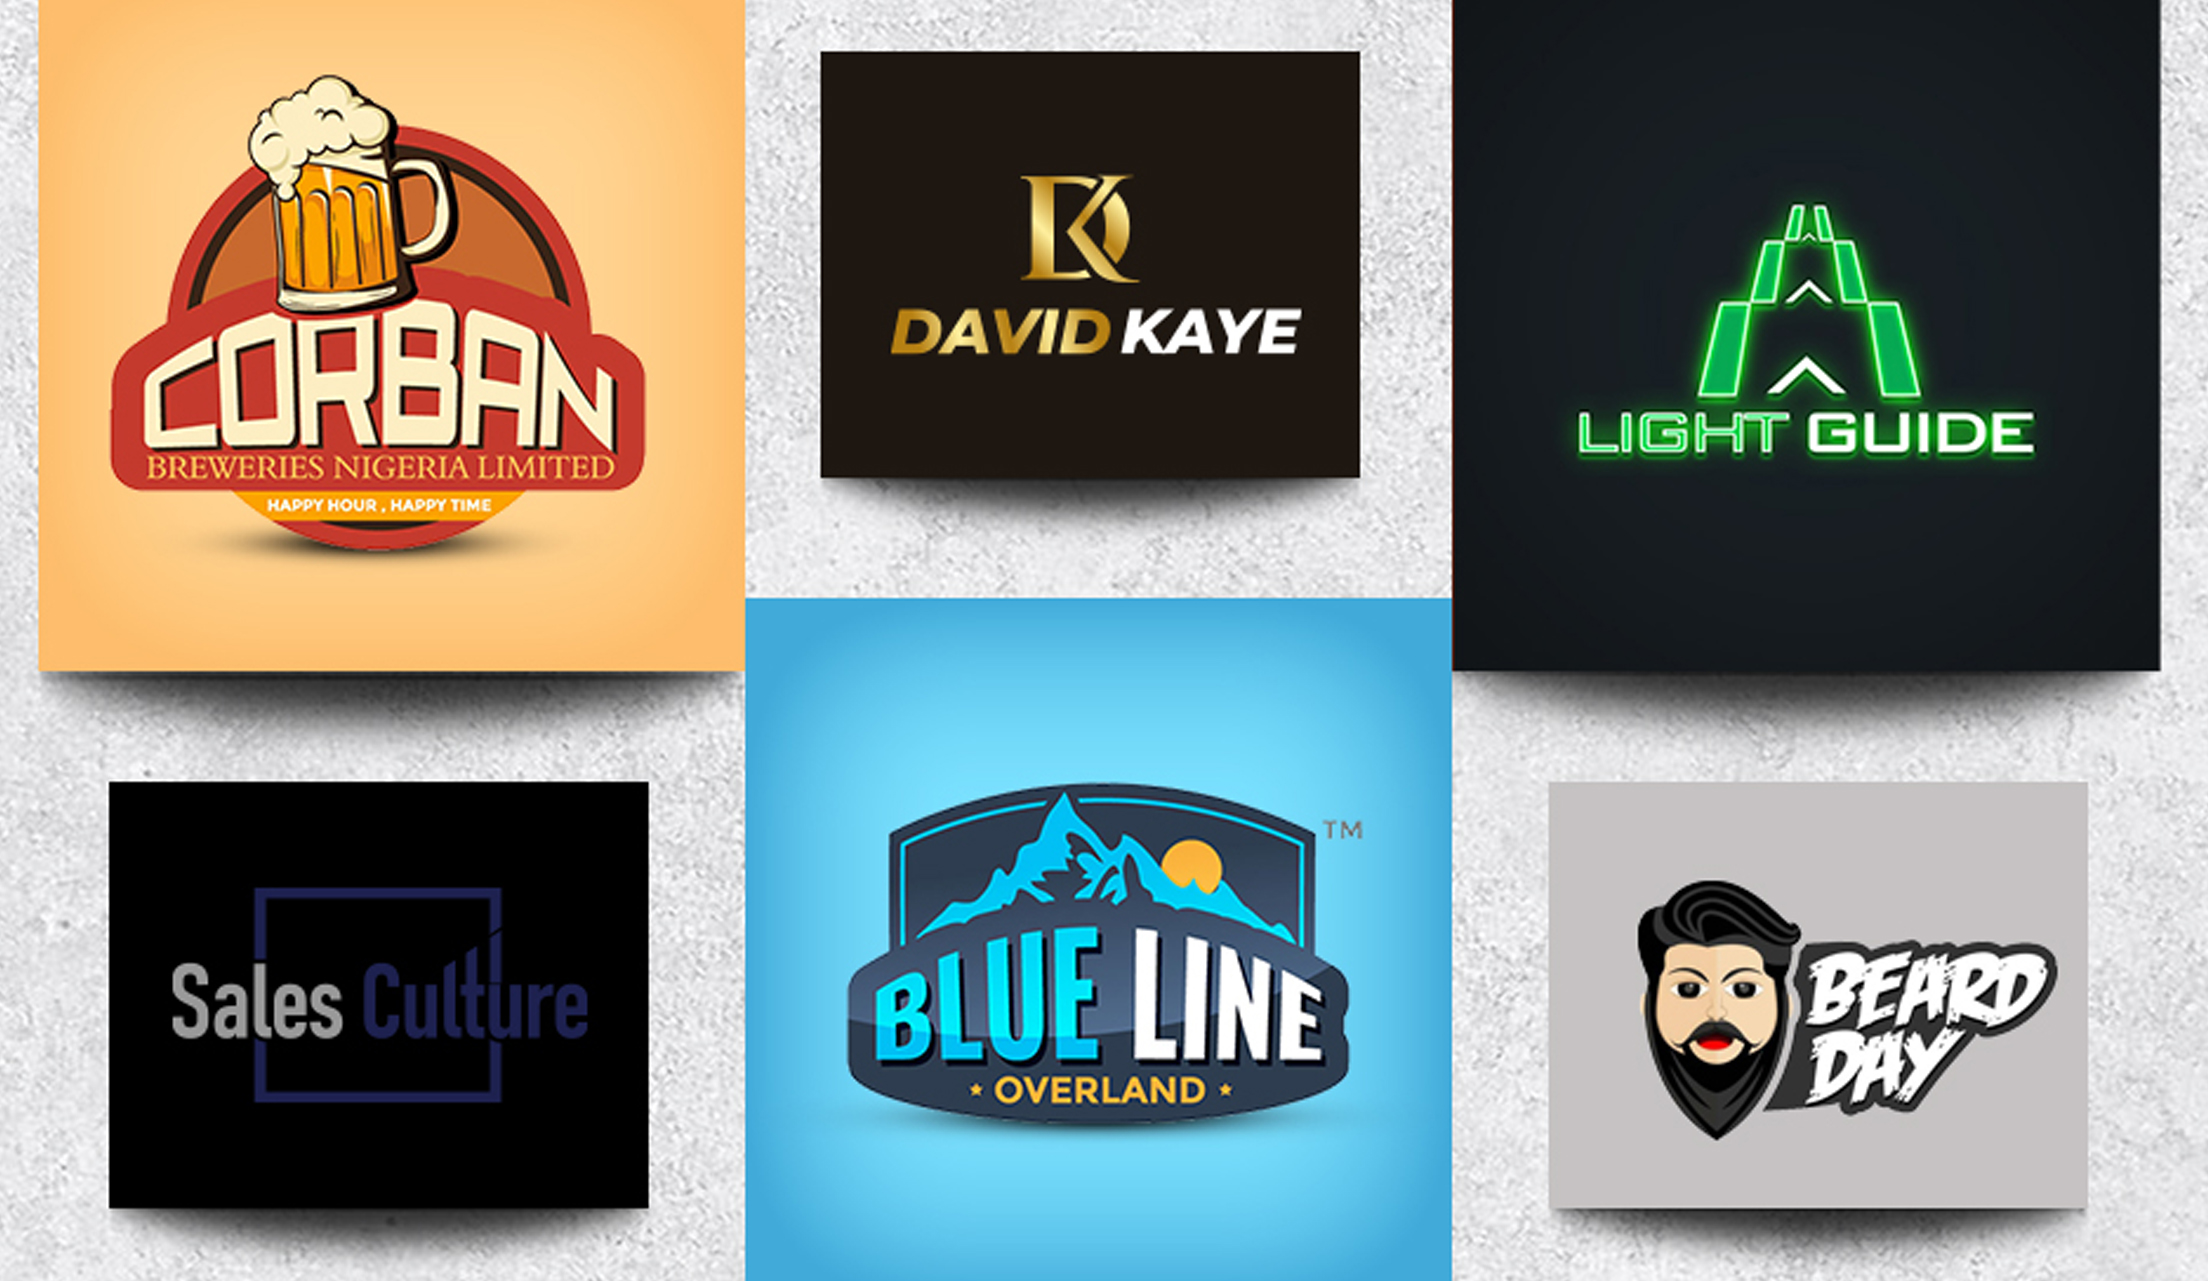 I will design 3 creative minimalist logo design within 24 hours